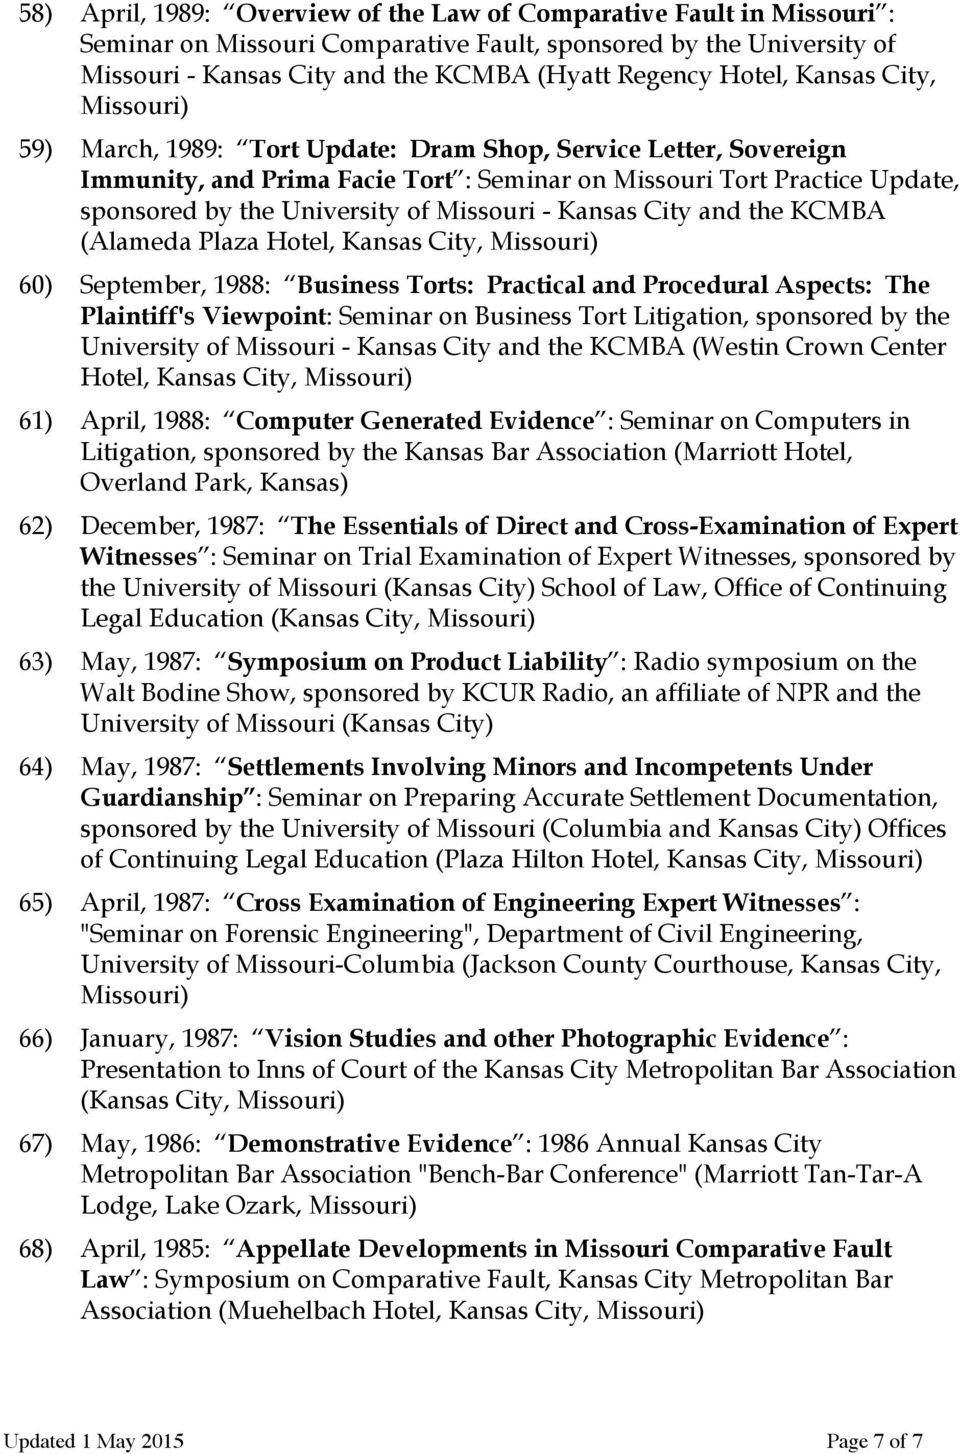 of Missouri - Kansas City and the KCMBA (Alameda Plaza Hotel, Kansas City, Missouri) 60) September, 1988: Business Torts: Practical and Procedural Aspects: The Plaintiff's Viewpoint: Seminar on